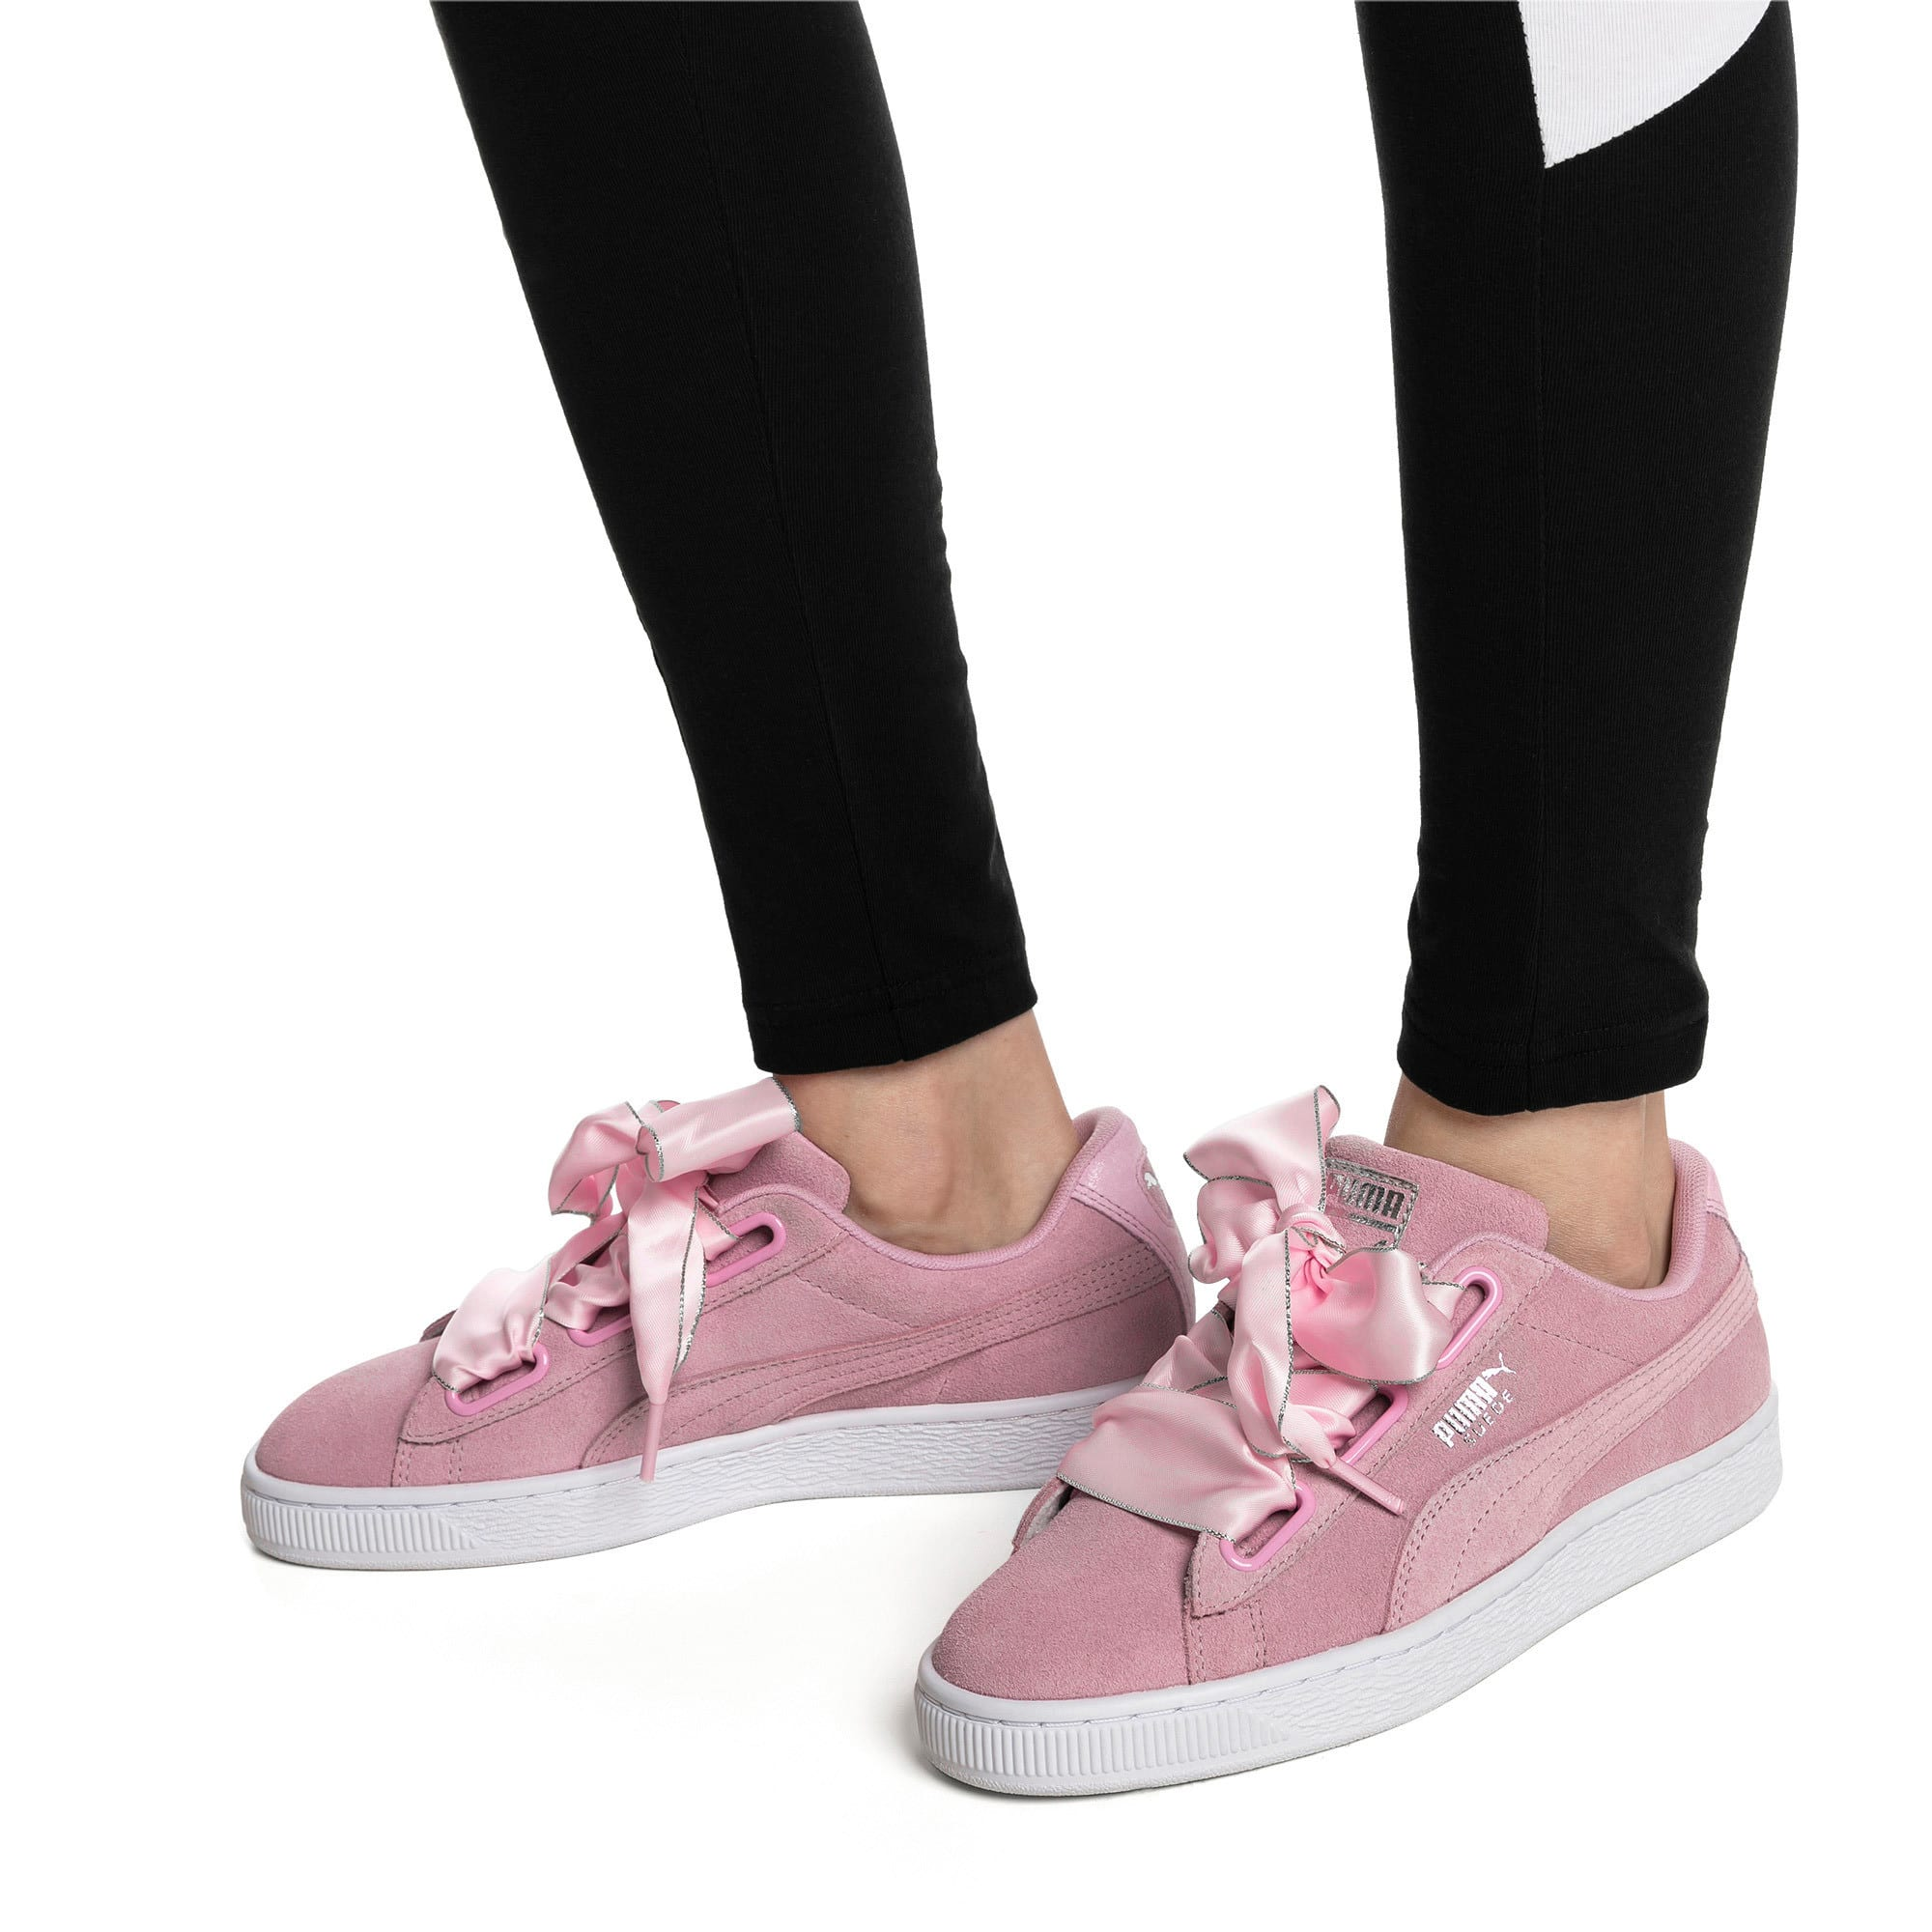 Thumbnail 2 of Suede Heart Galaxy Women's Shoes, Pale Pink-Puma Silver, medium-IND